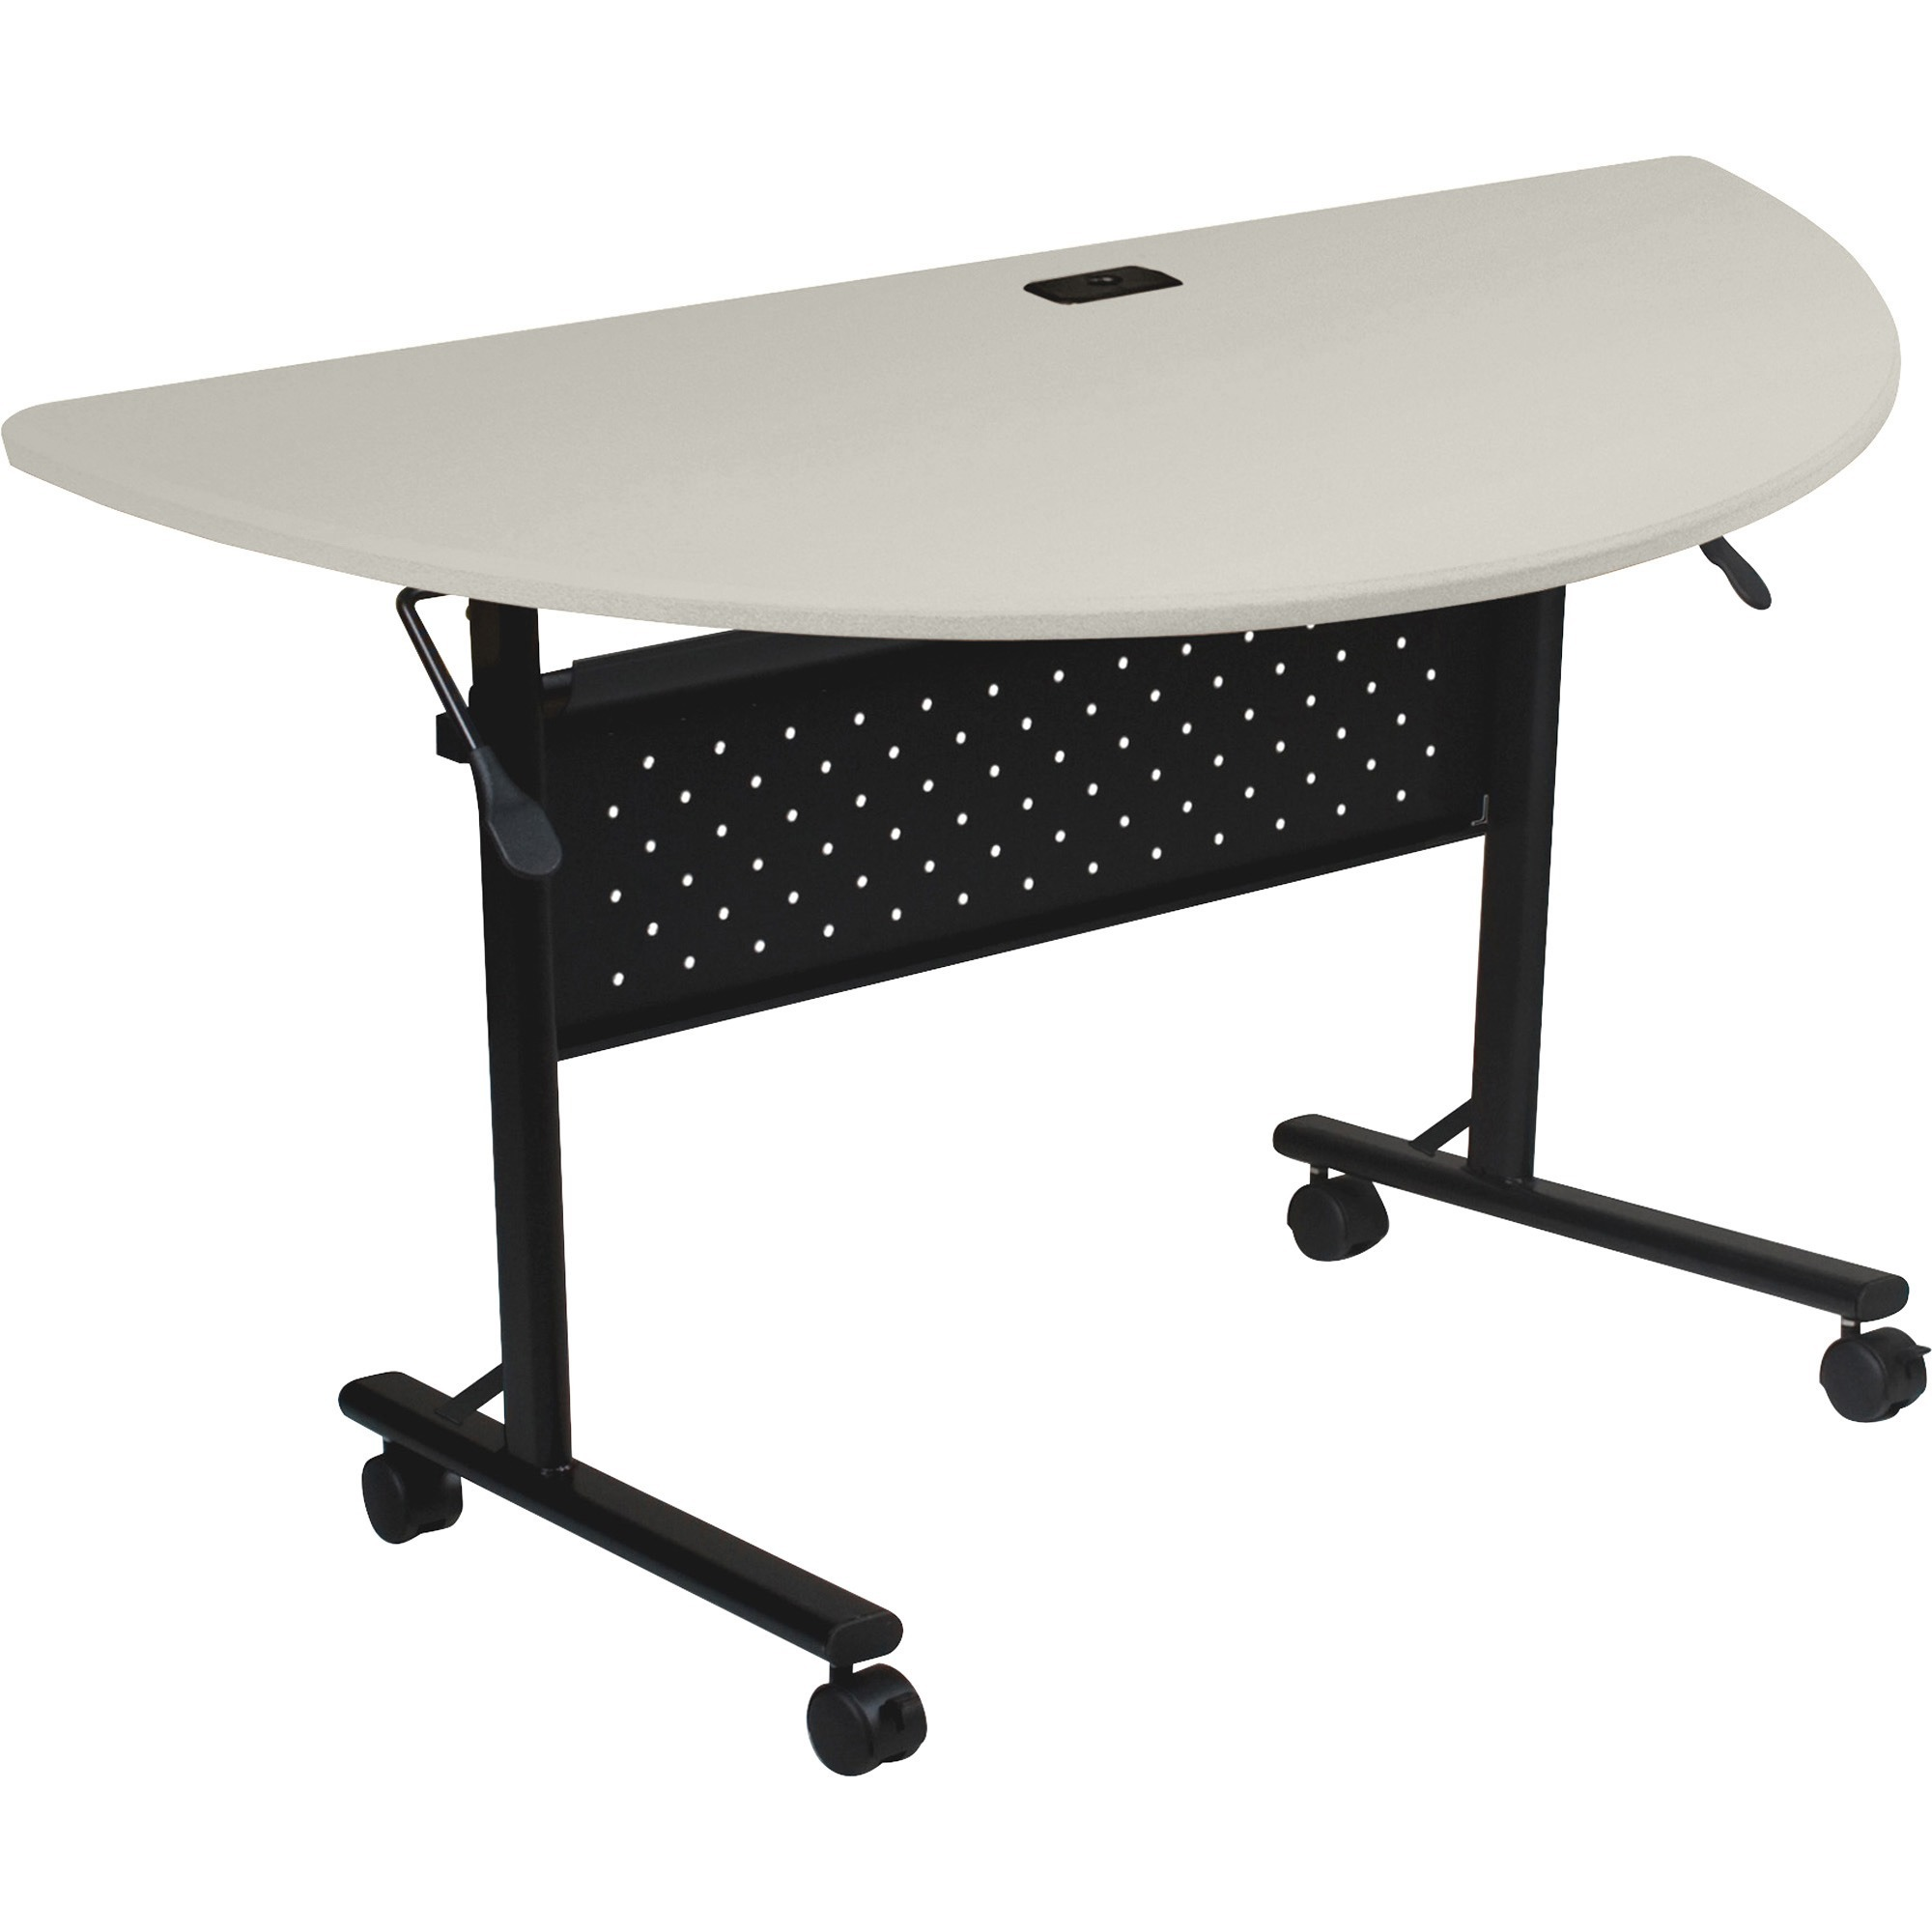 Lorell, LLR60665, Flipper Training Table, 1 Each